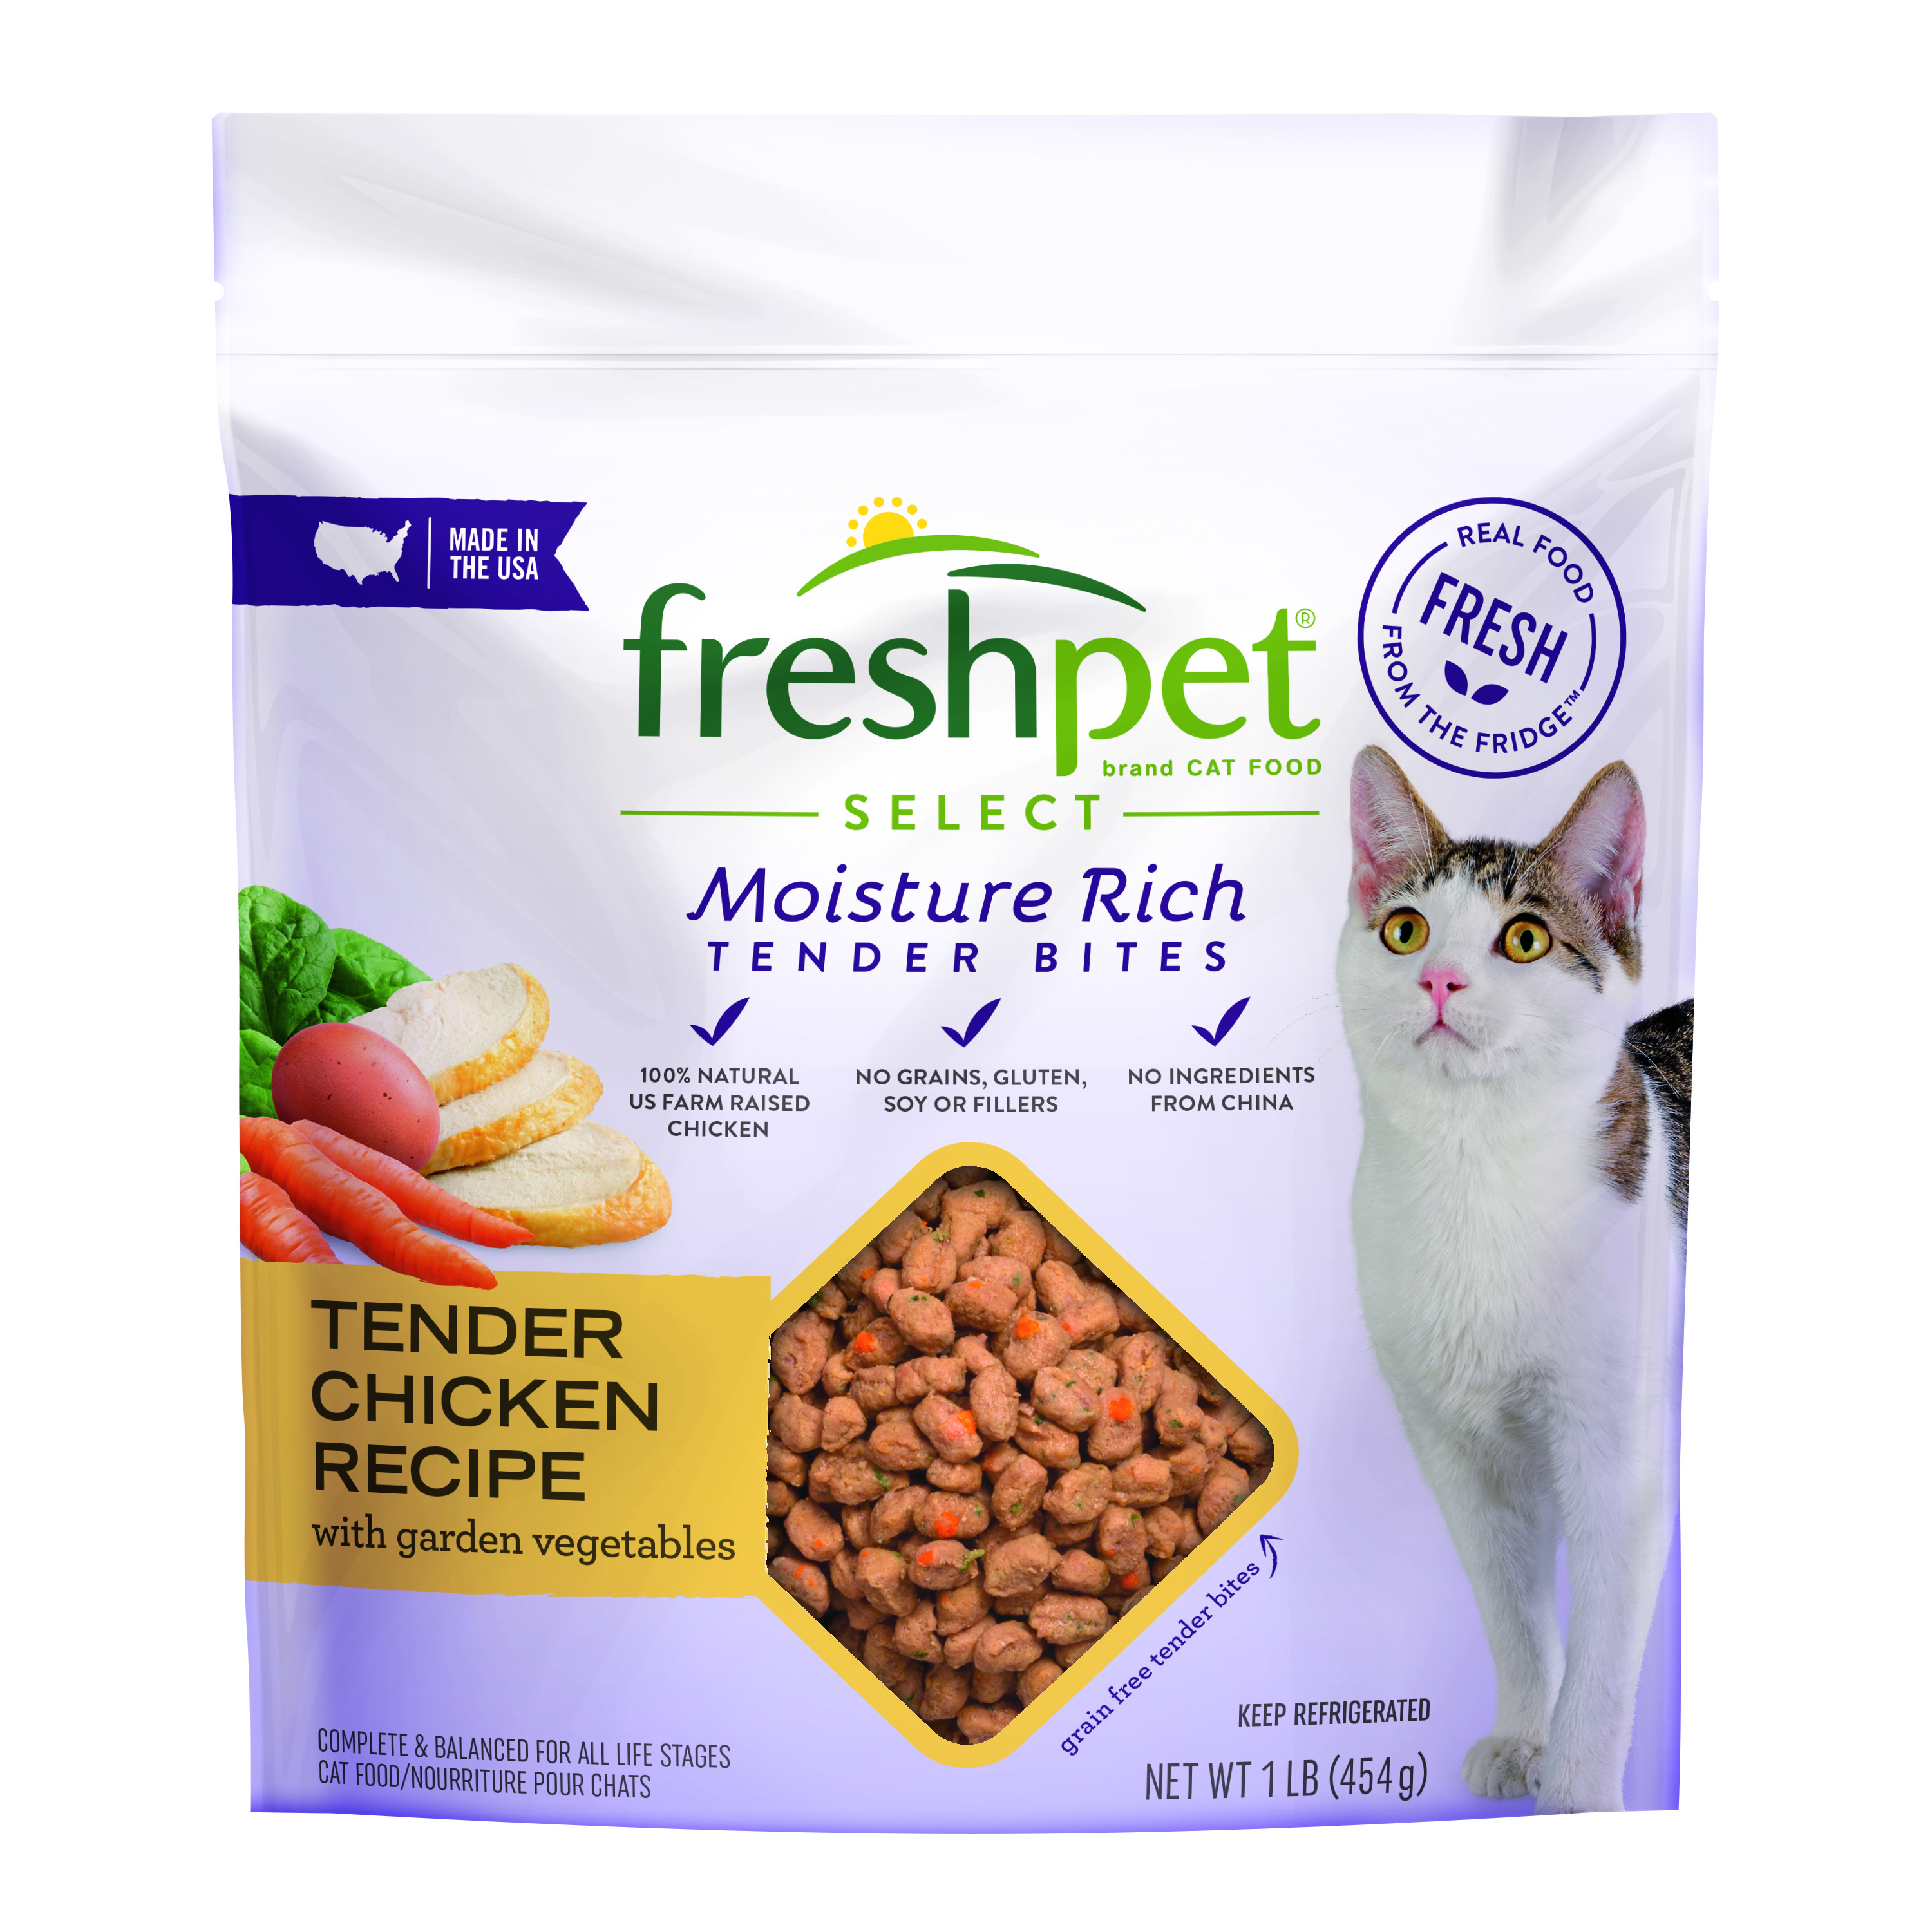 Freshpet Select Tender Chicken with Garden Vegetables Roasted Meals for Cats, 1.0 Lb